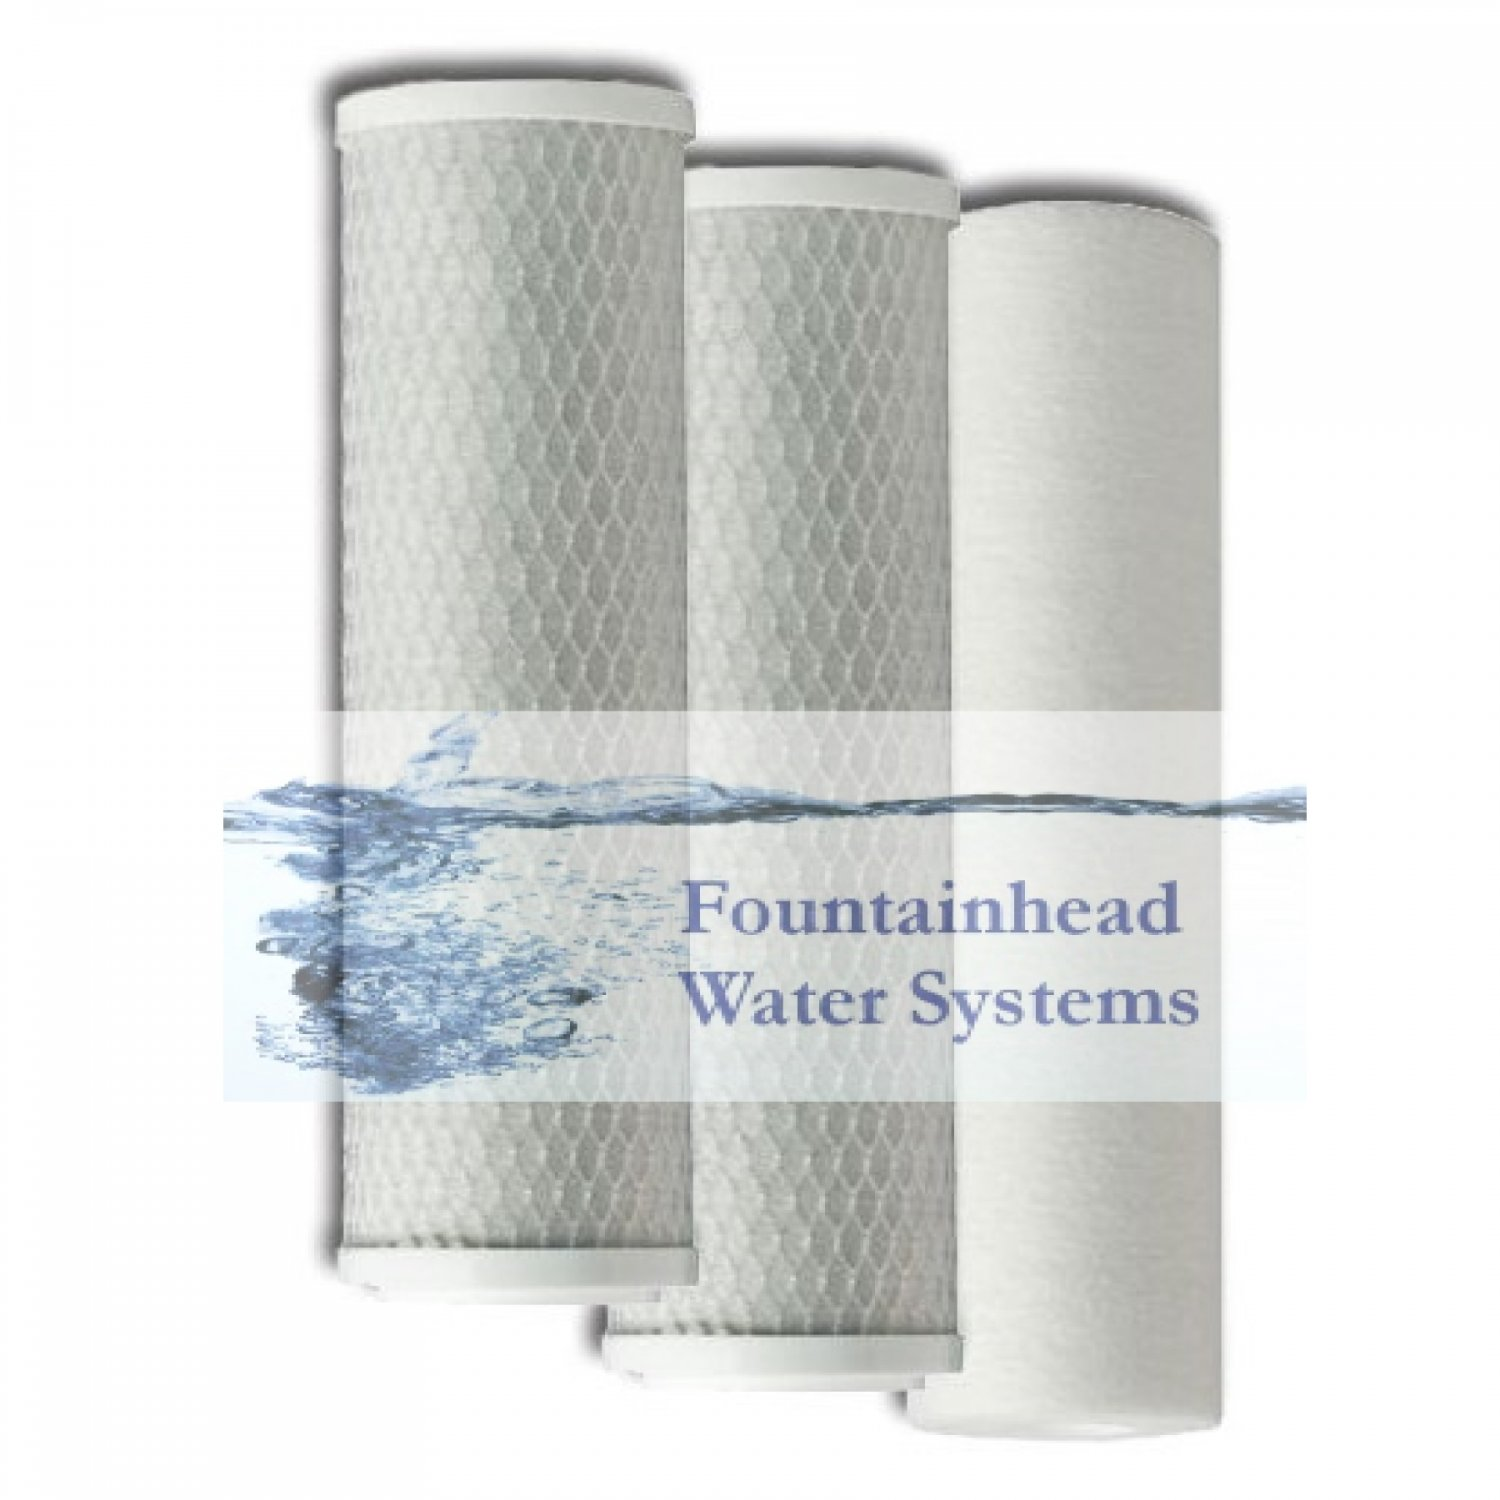 FOUNTAINHEAD 1 SEDIMENT 2 CARBON BLOCK FILTER SET REVERSE OSMOSIS FILTER SYSTEMS